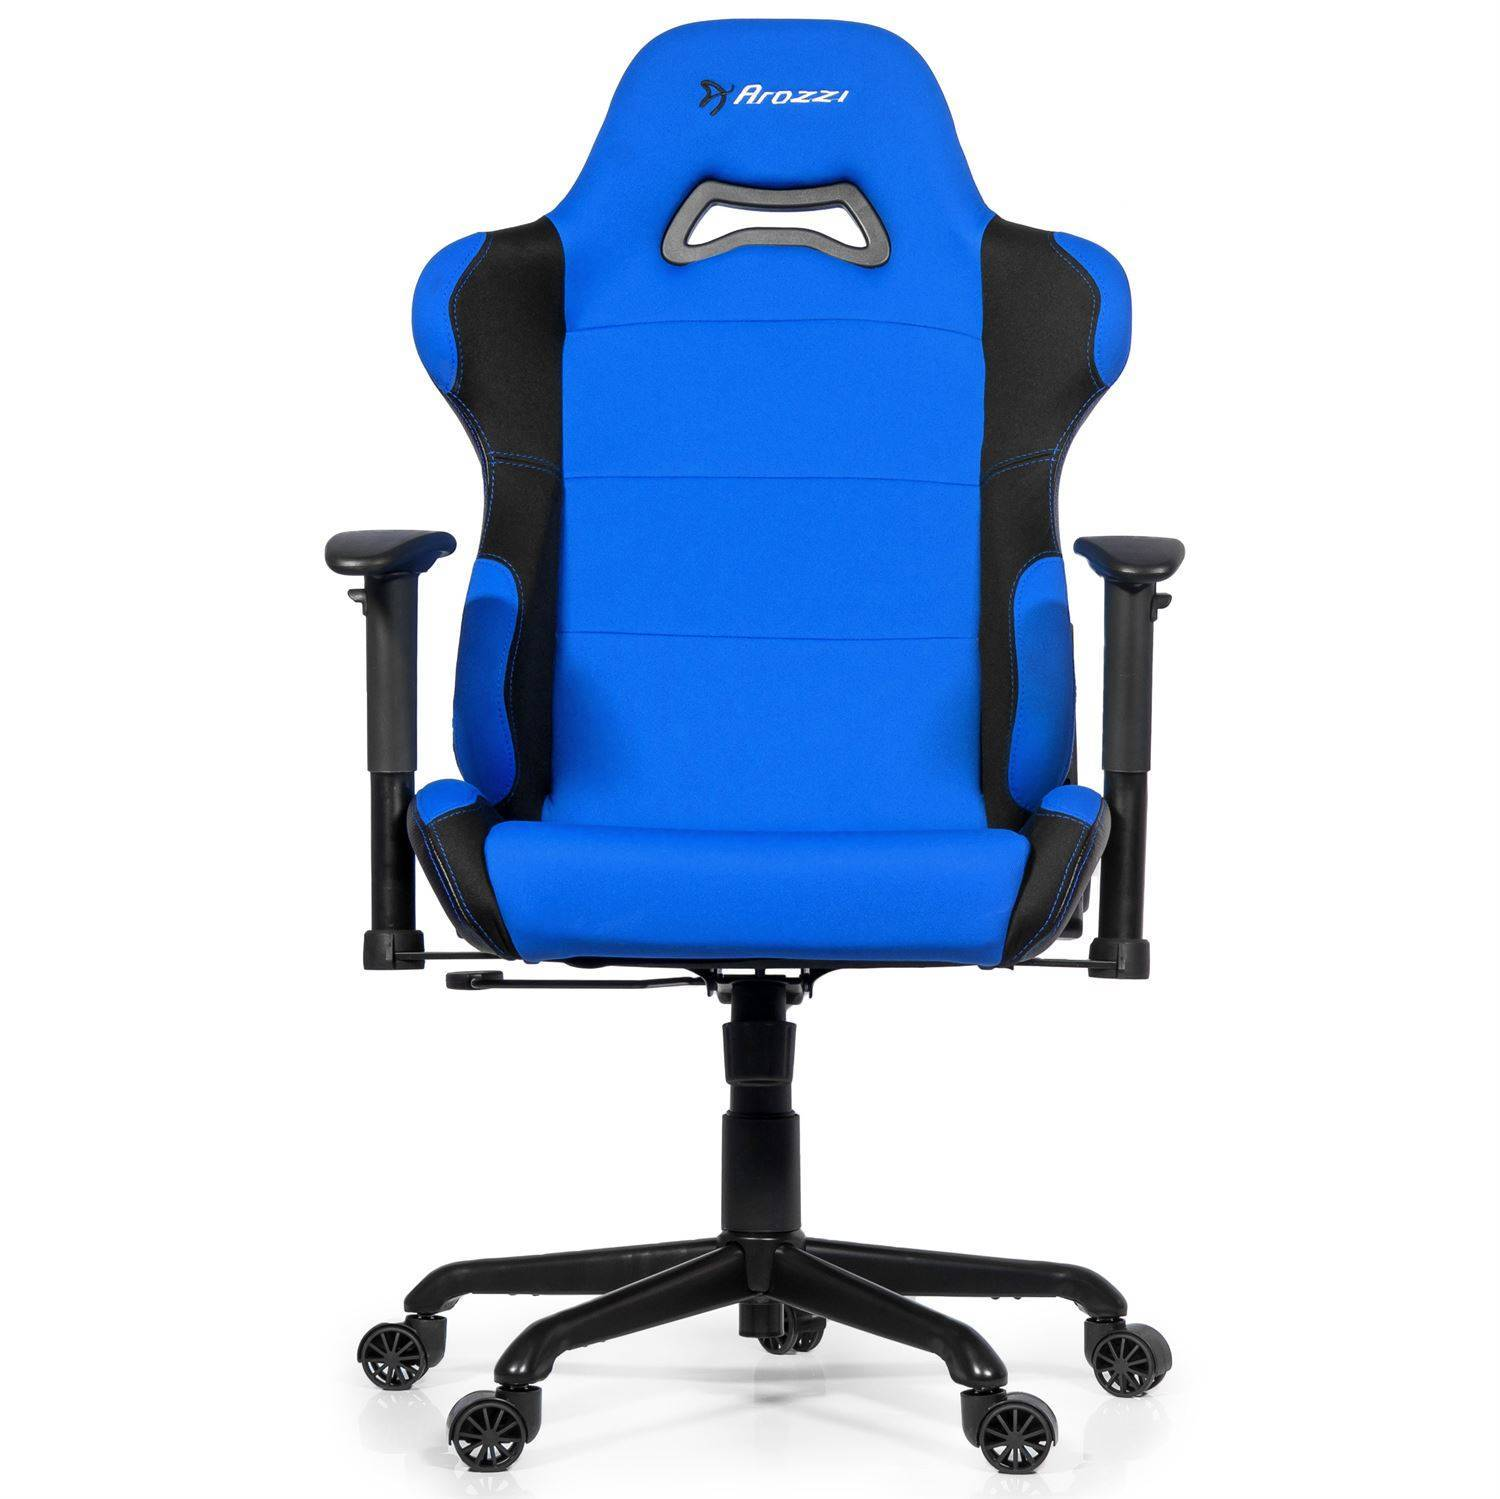 Arozzi Torretta Xl Gaming Chair Blue K 248 B Hos Webdanes Dk